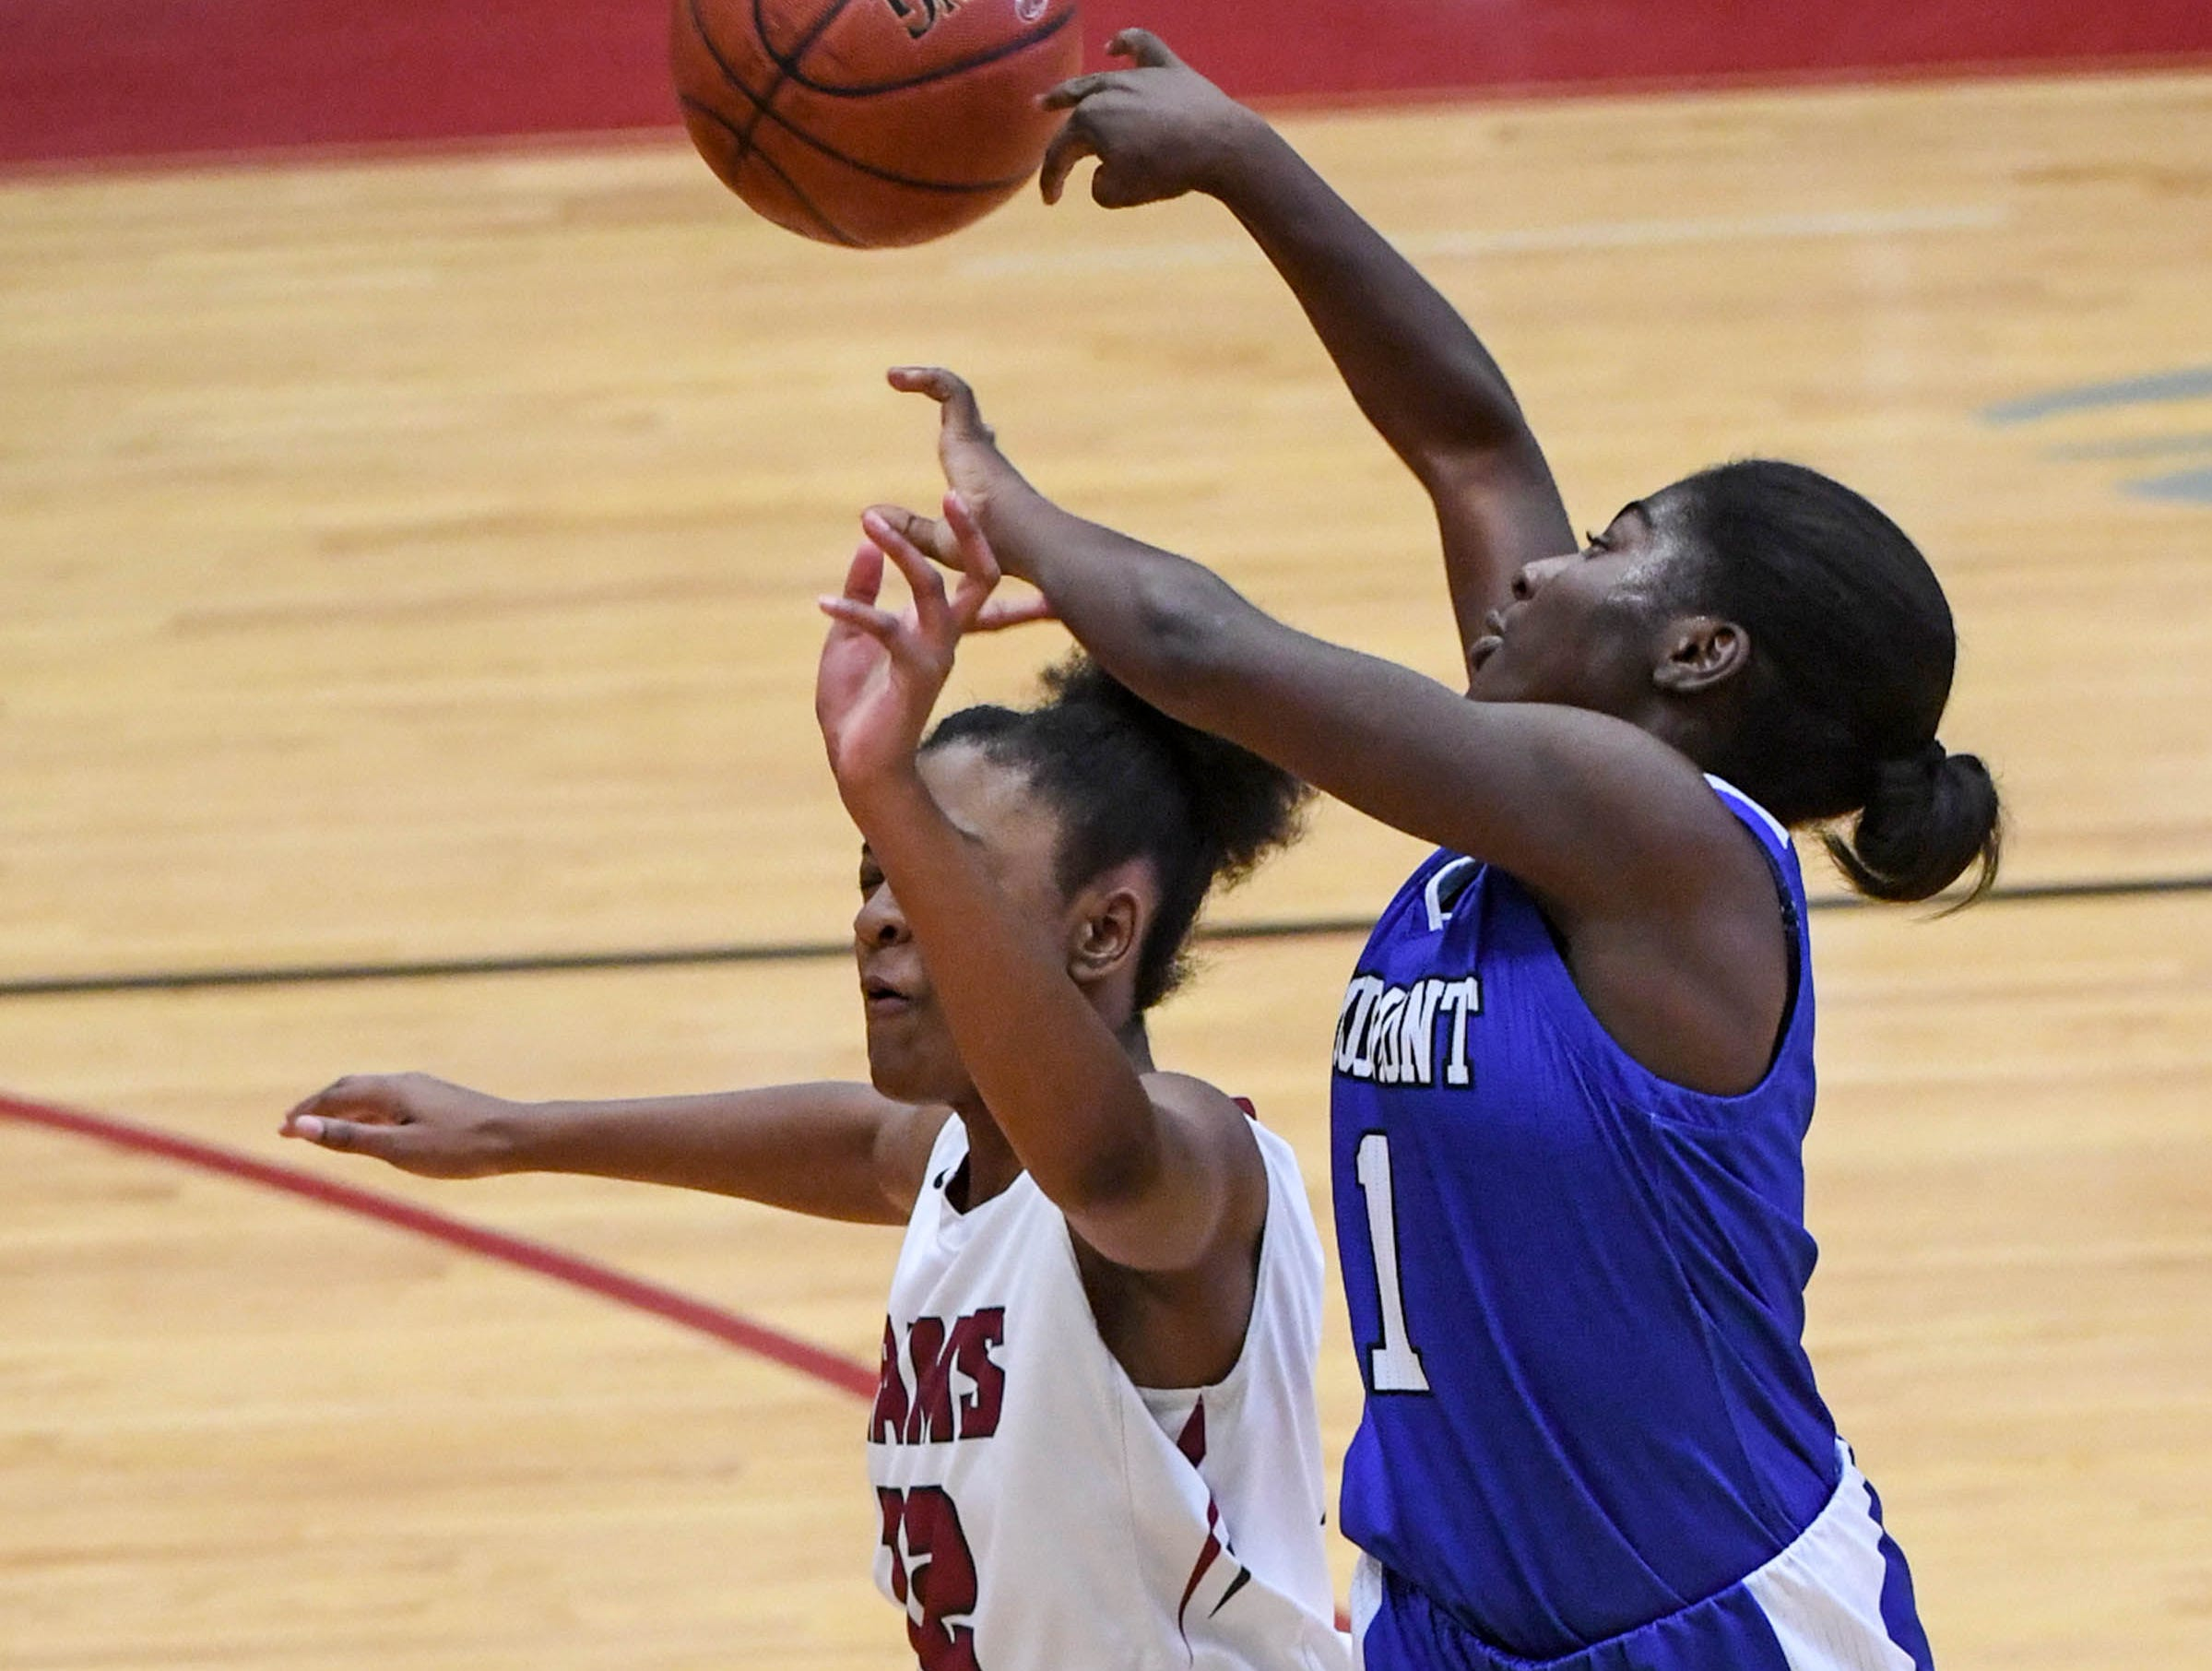 Westside freshman Branya Pruitt(12) and Woodmont freshman Mazari Bennett(1) reach for a loose ball during the third quarter at Westside High School in Anderson on Tuesday.